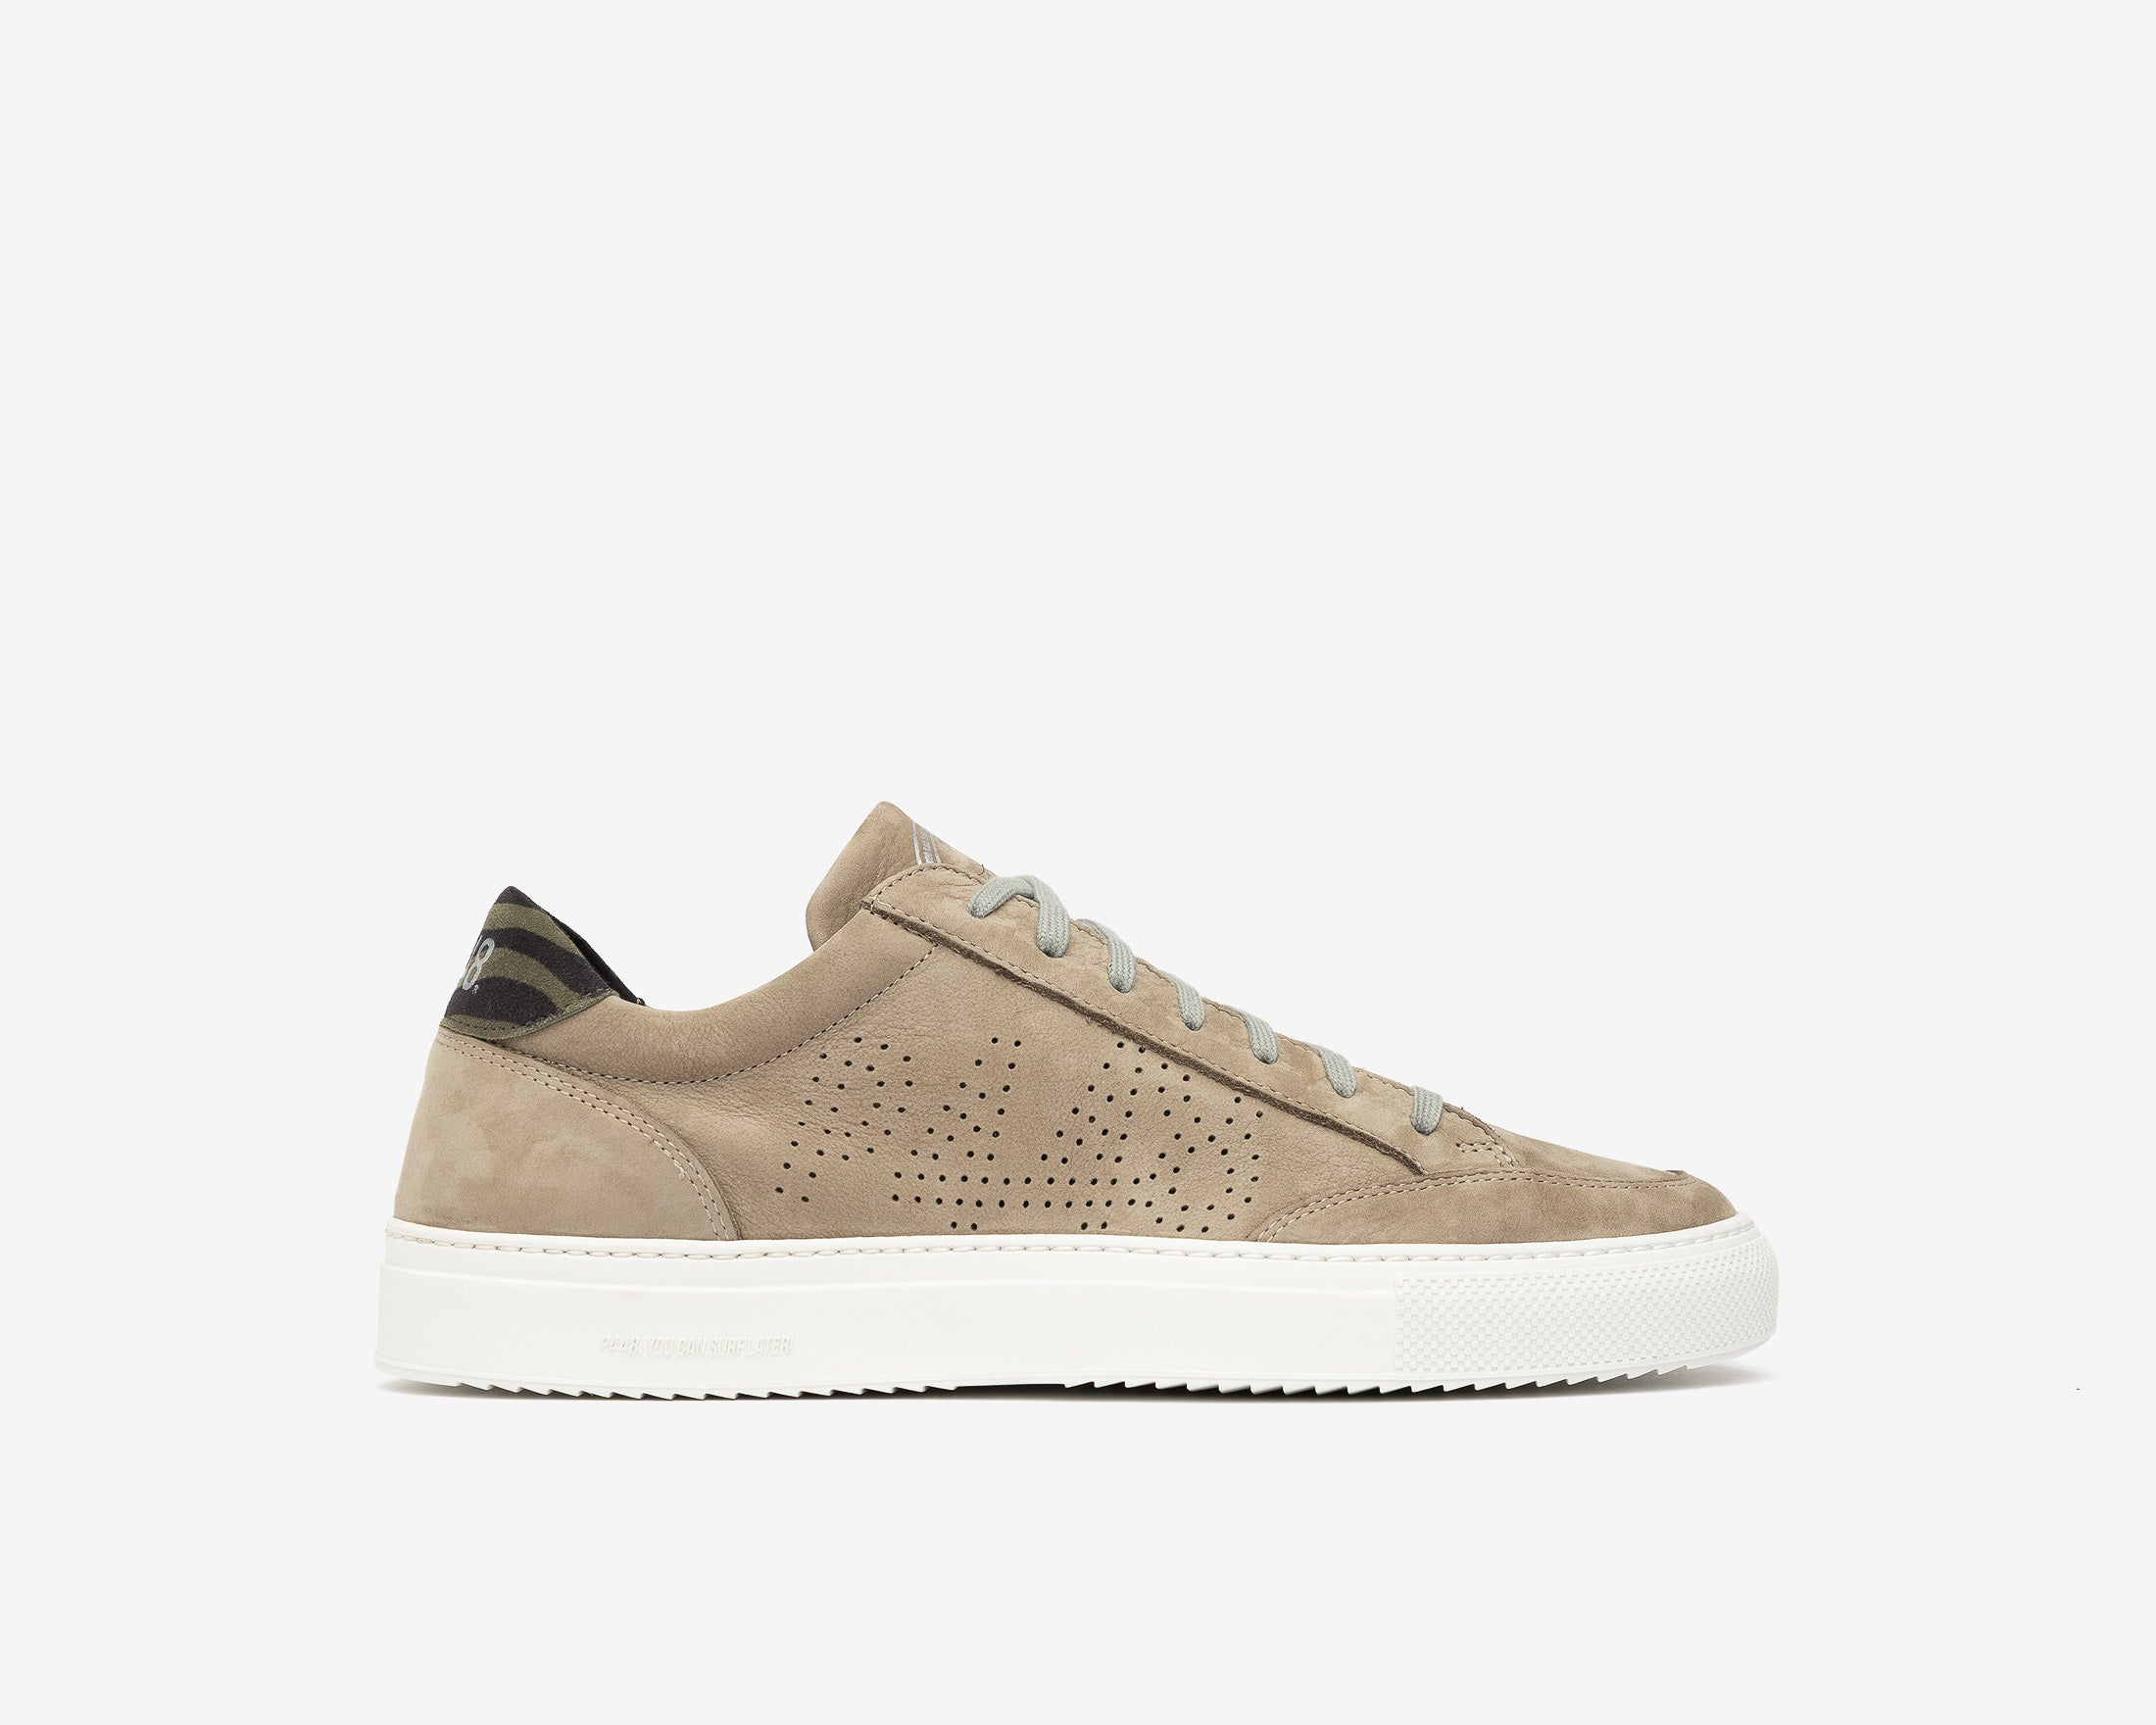 Soho Low-Top Sneaker in Gray Nab - Profile